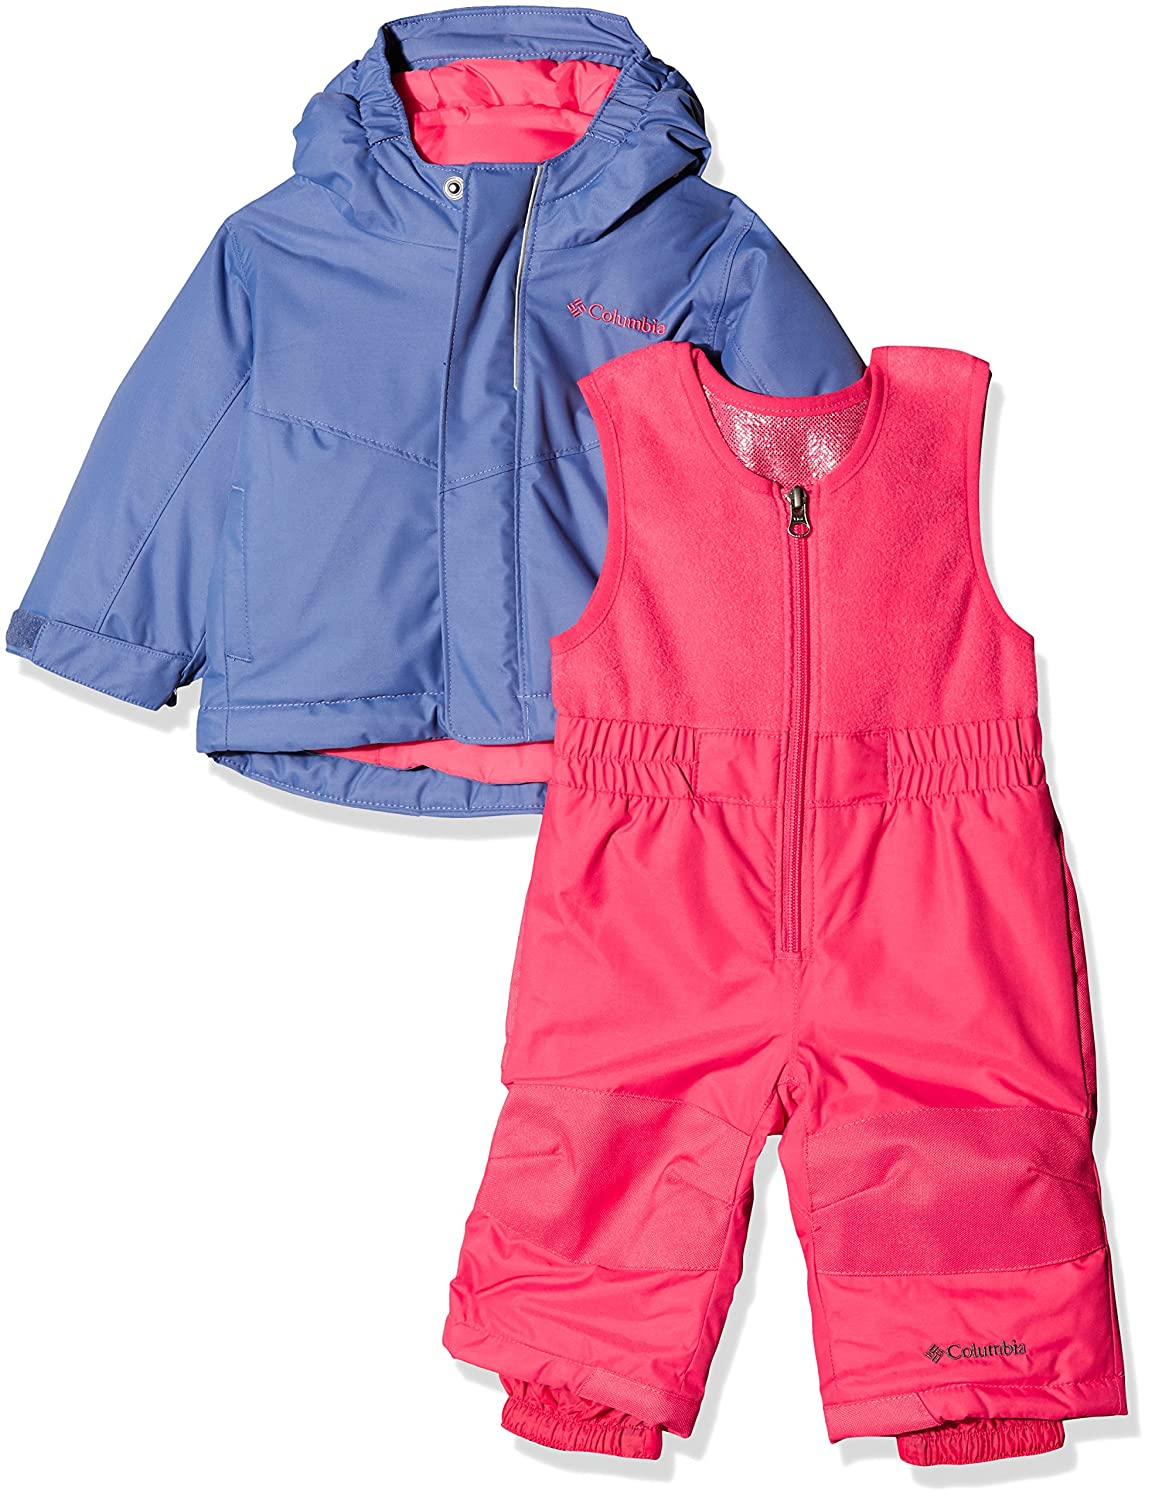 Columbia Babies Buga Thermal Sets SN0030